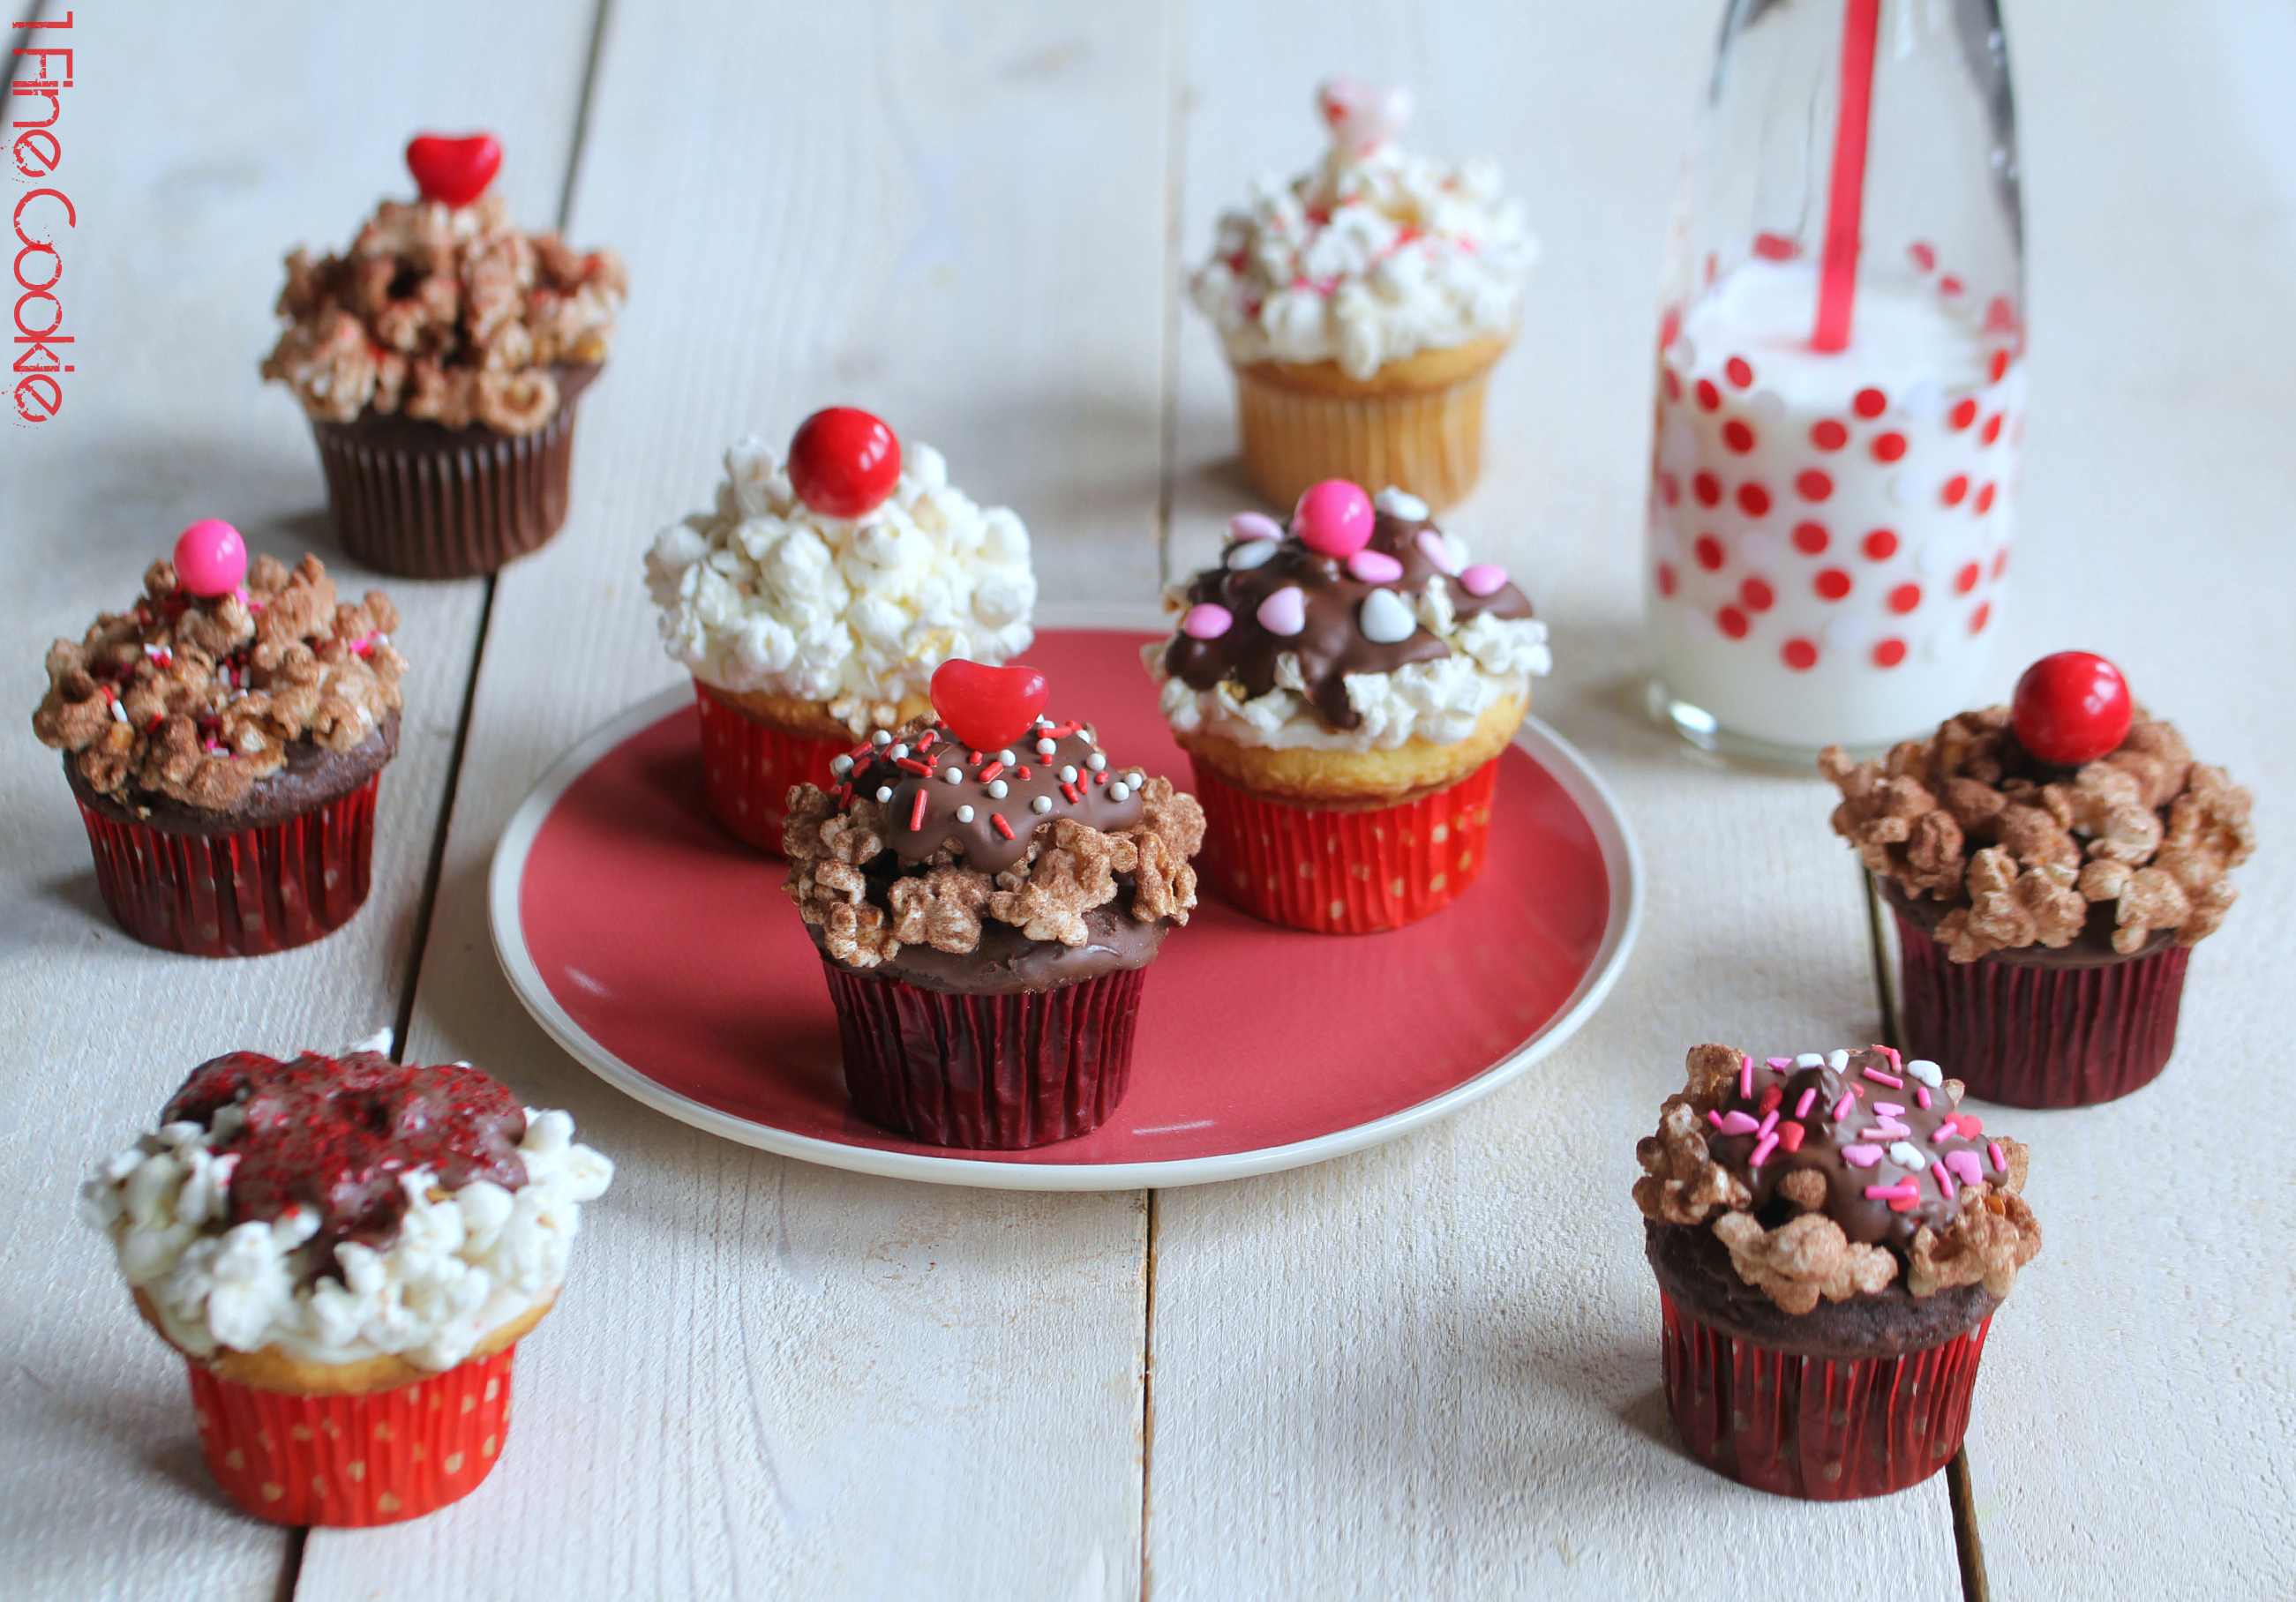 Popcorn Pink and Red cupcakes by 1 Fine Cookie, valentine's, day, recipe, cupcake, chocolate, vanilla, yellow, cake, pink, red, white, sprinkles, popcorn, seasoned, salty, savory, sweet, sprinkles, sundae, party, idea, cherry, heart, brown, white, ice, cream, dessert, sweets, fudge,